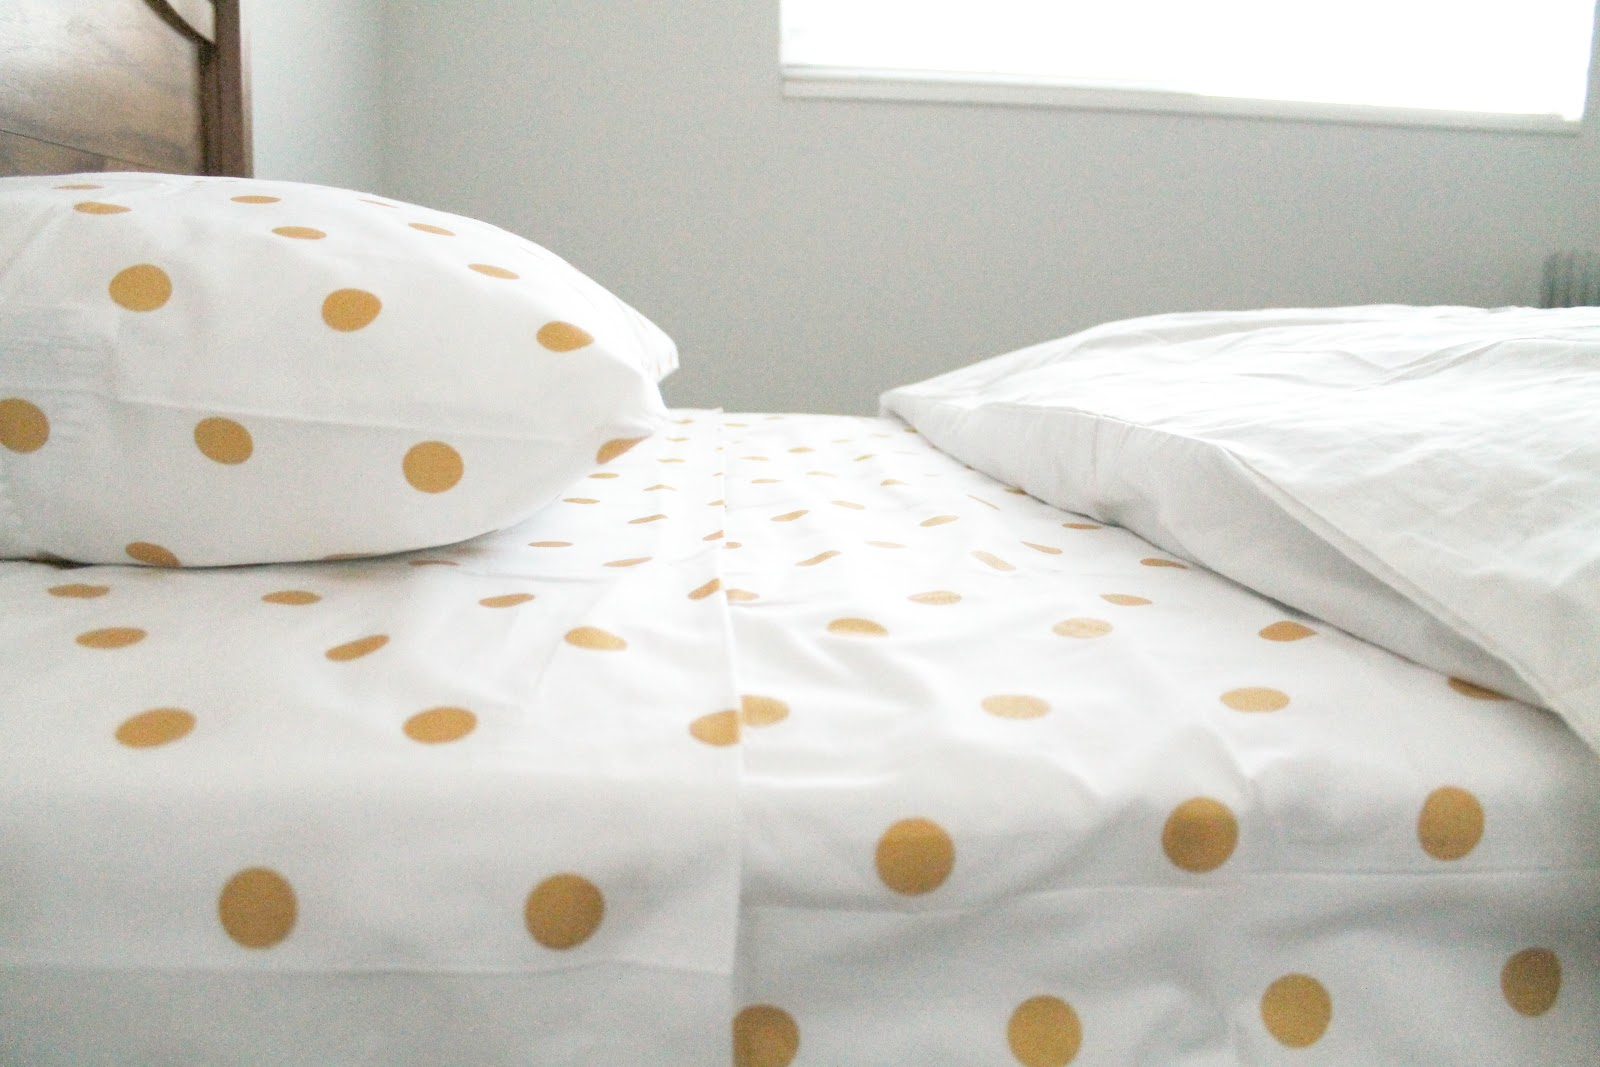 Incroyable The Bed (And Gold Dot Sheets) Has Landed.